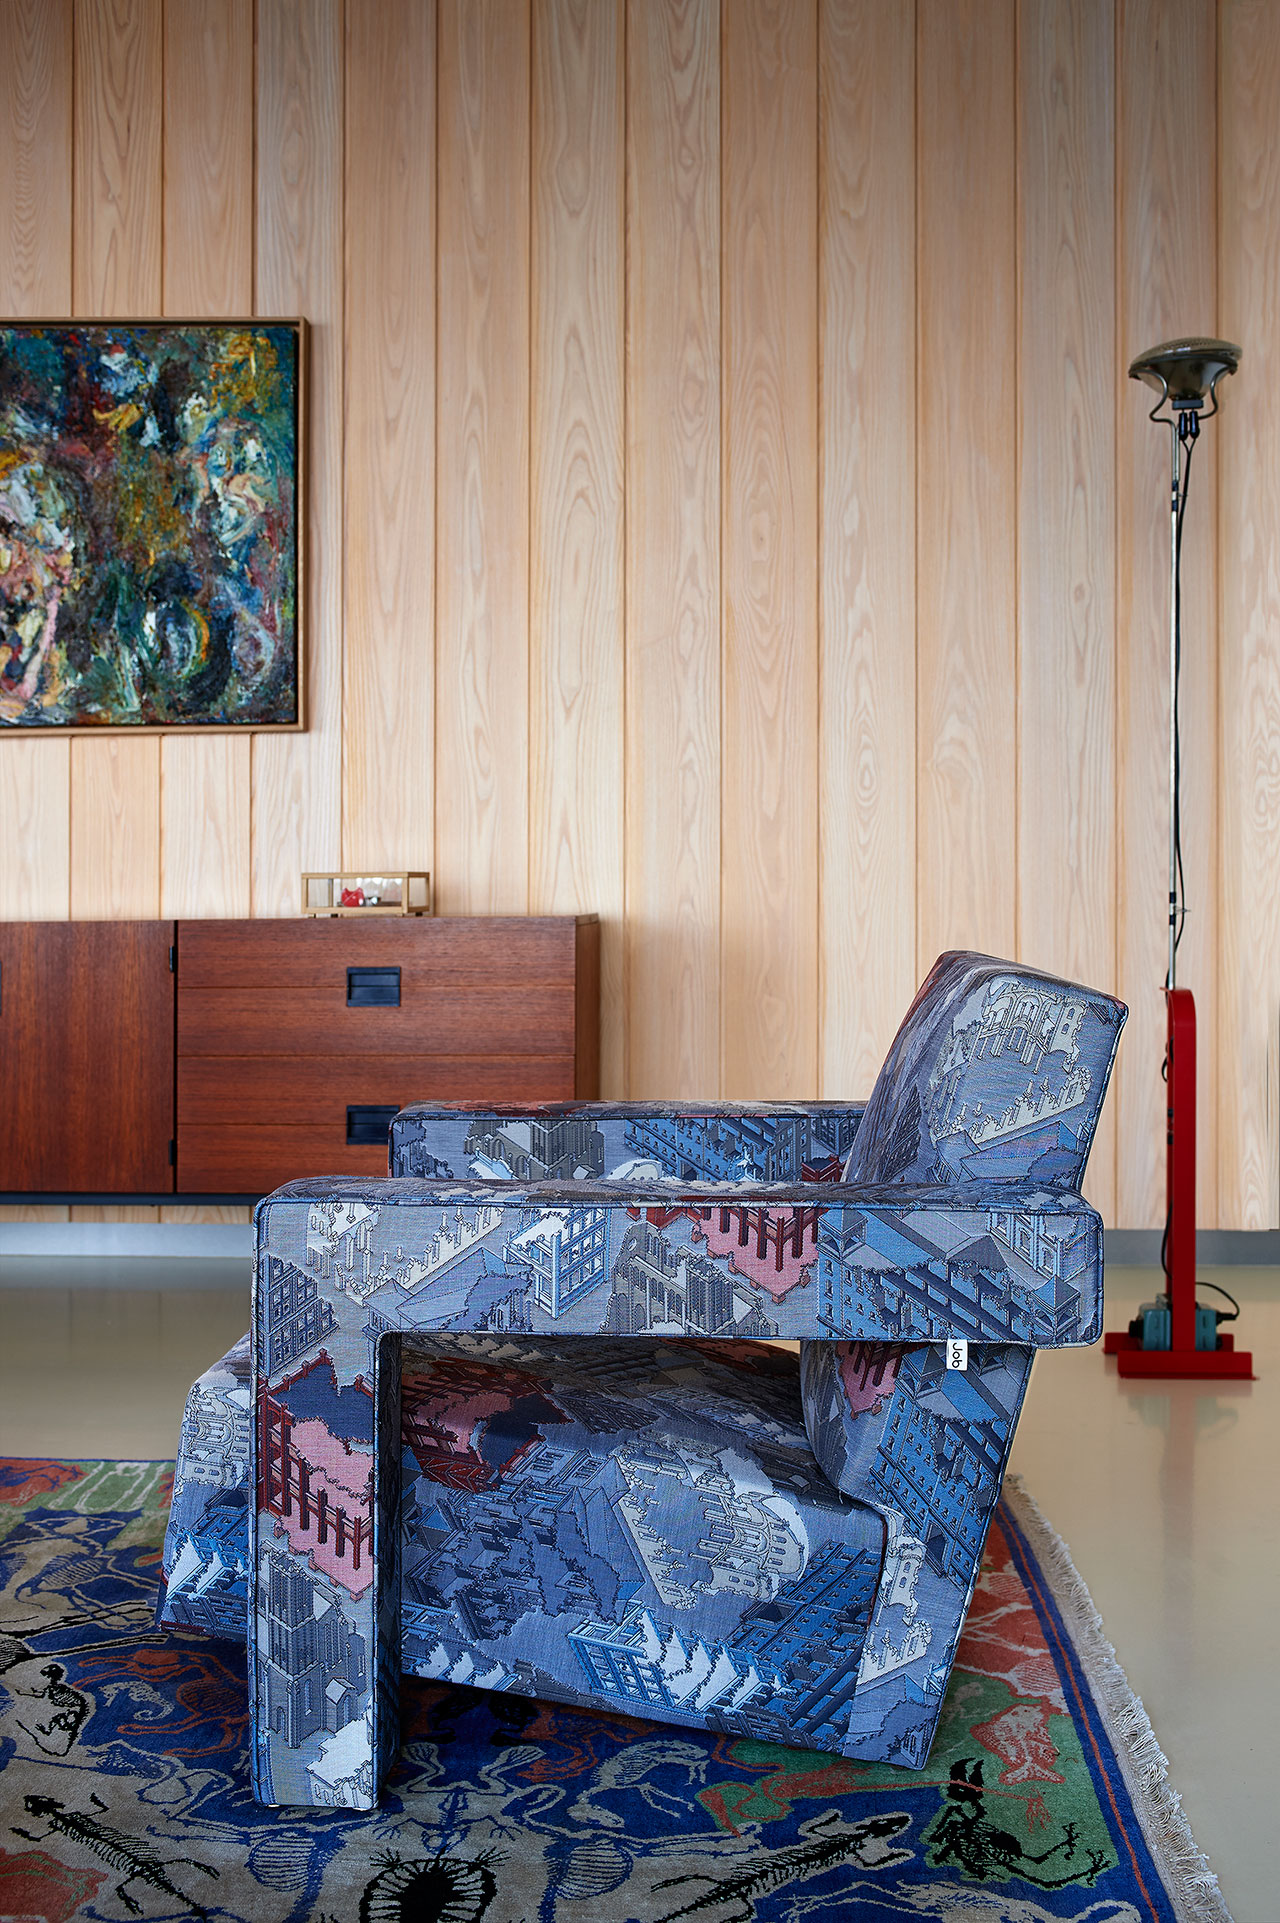 Utrecht Chair, Rietveld Ruins upholstered with fabric designed by Studio Job for Maharam. Perished Persian, Studio Job for Nodus. Credenza, Pastoe DU-03, Cees Braakman. Display box Memento, Knight & Clown. Marine painting, Constant Permeke. Floor Lamp, Achille / Ciacomo Castiglioni. Photo by Dennis Brandsma.